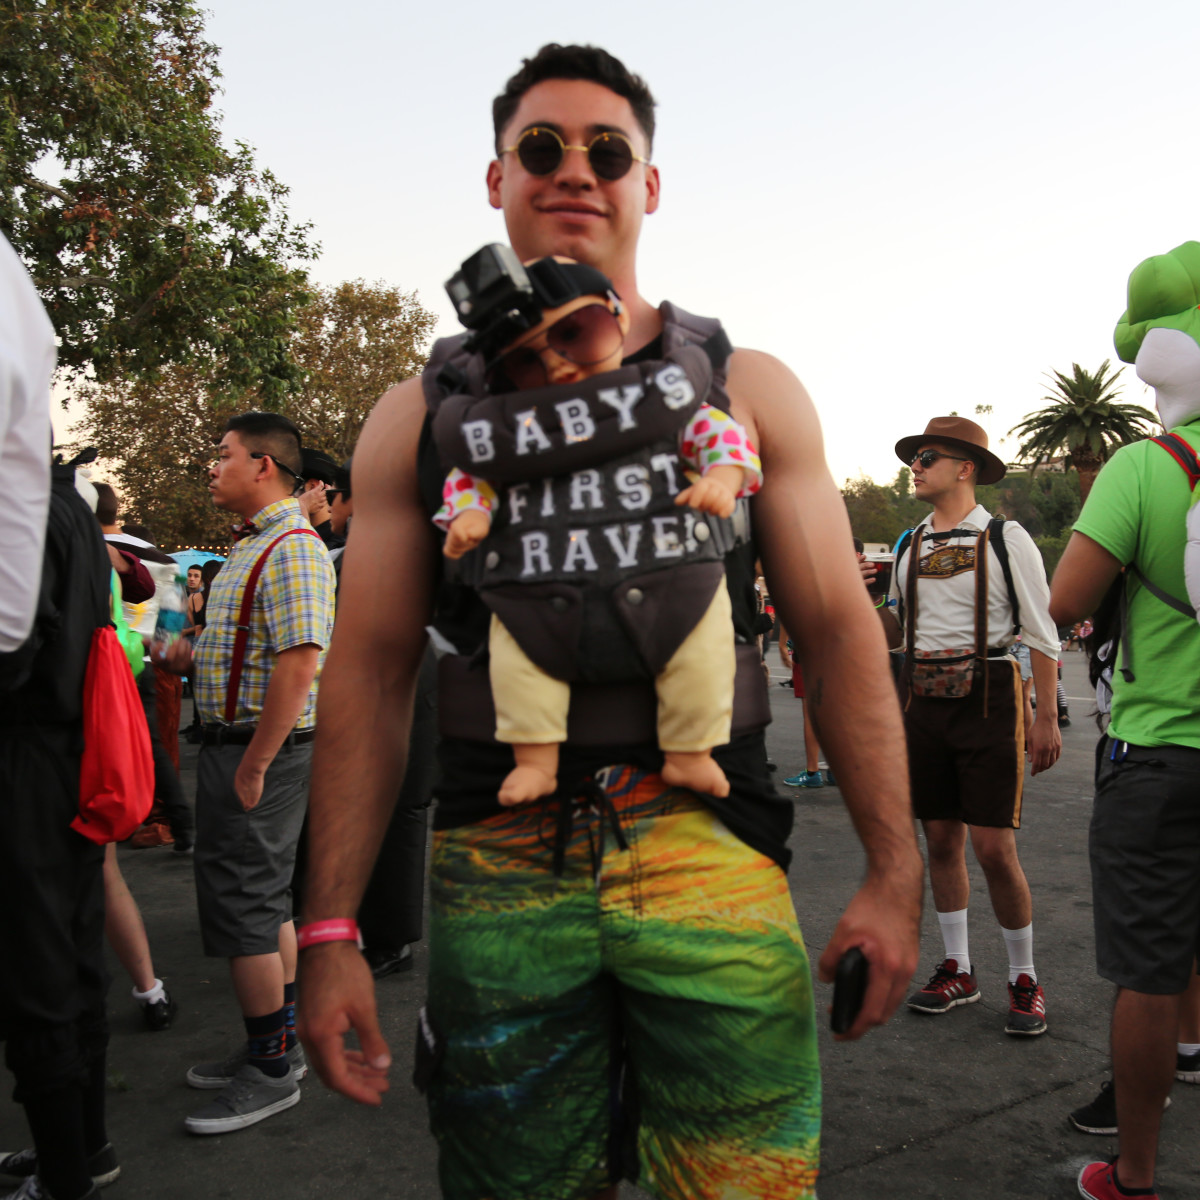 Baby's First Rave HARD DOTD 2015